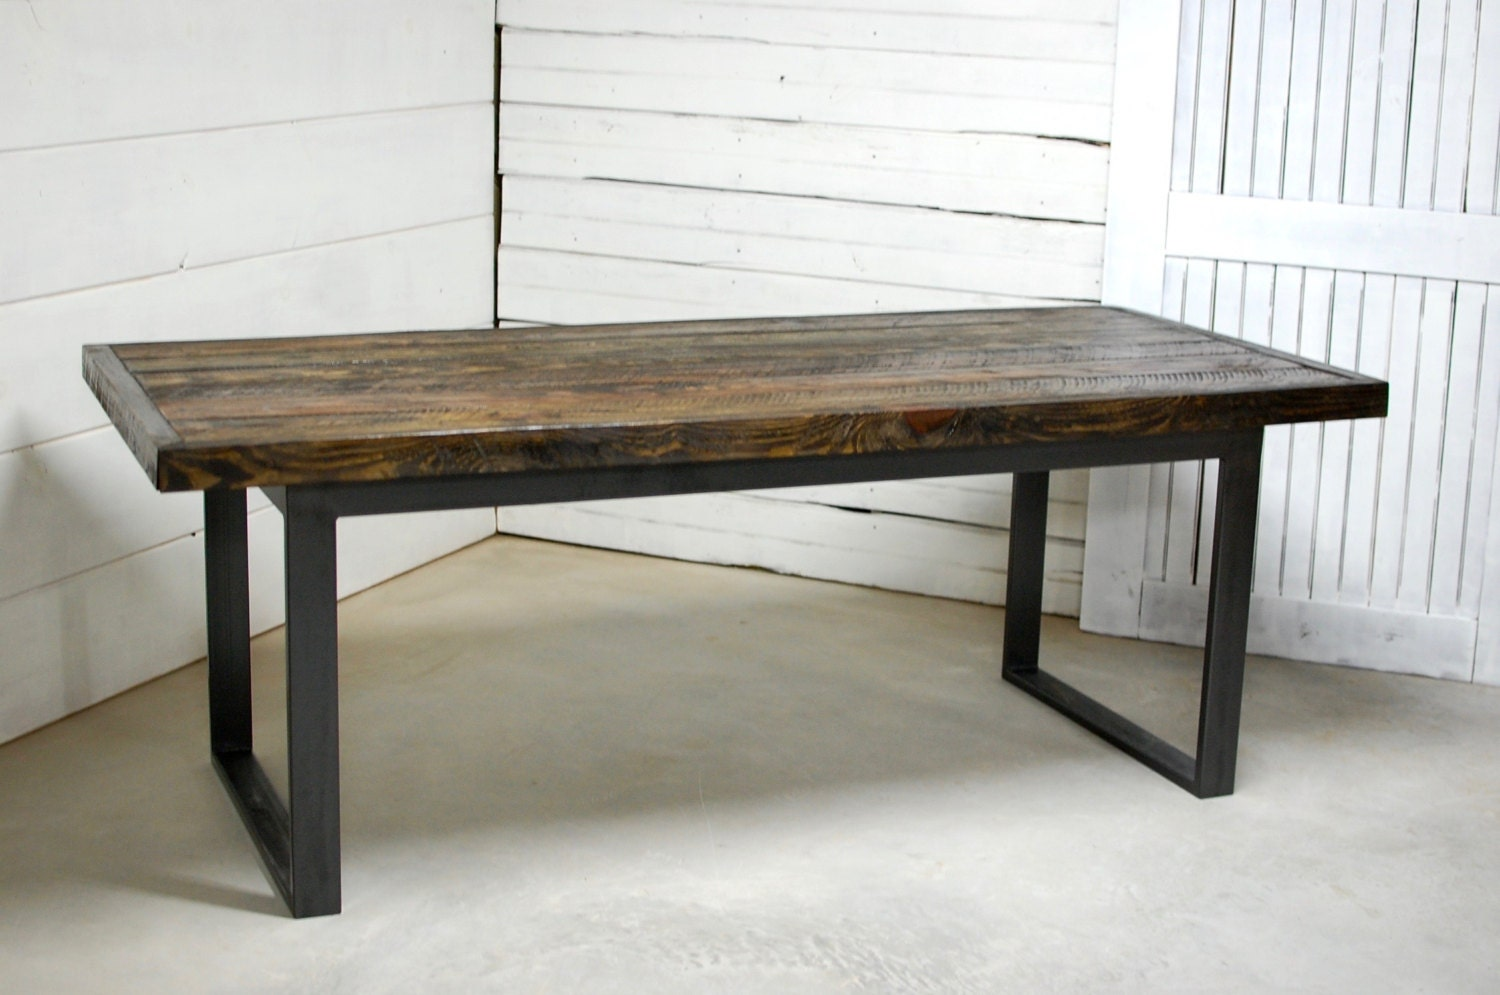 Reclaimed Modern Wood Dining Table By Sumsouthernsunshine On Etsy